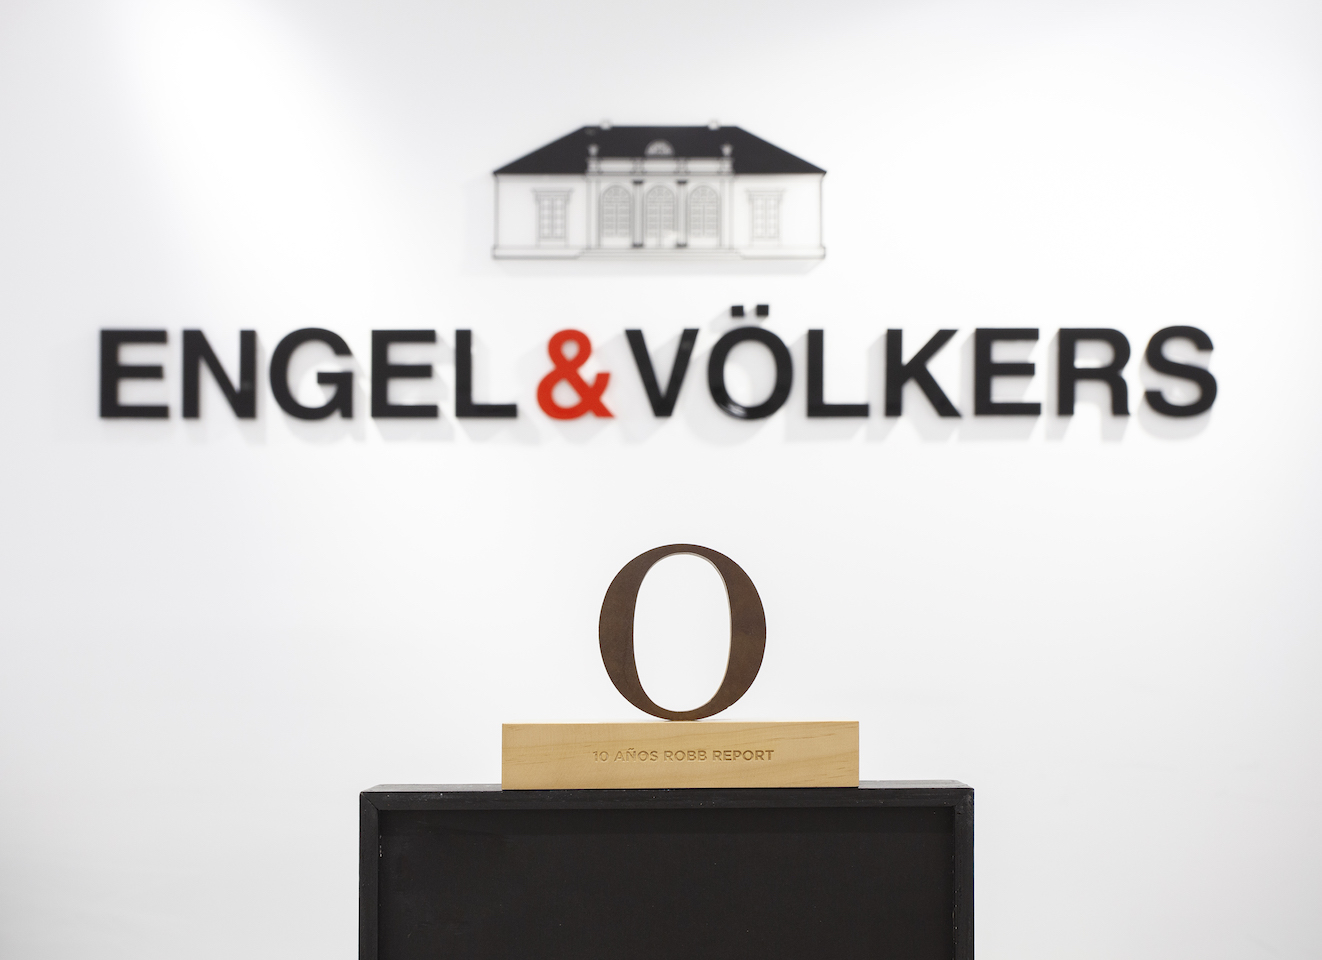 'Robb Report' Spain once again rates Engel & Völkers as the top brand